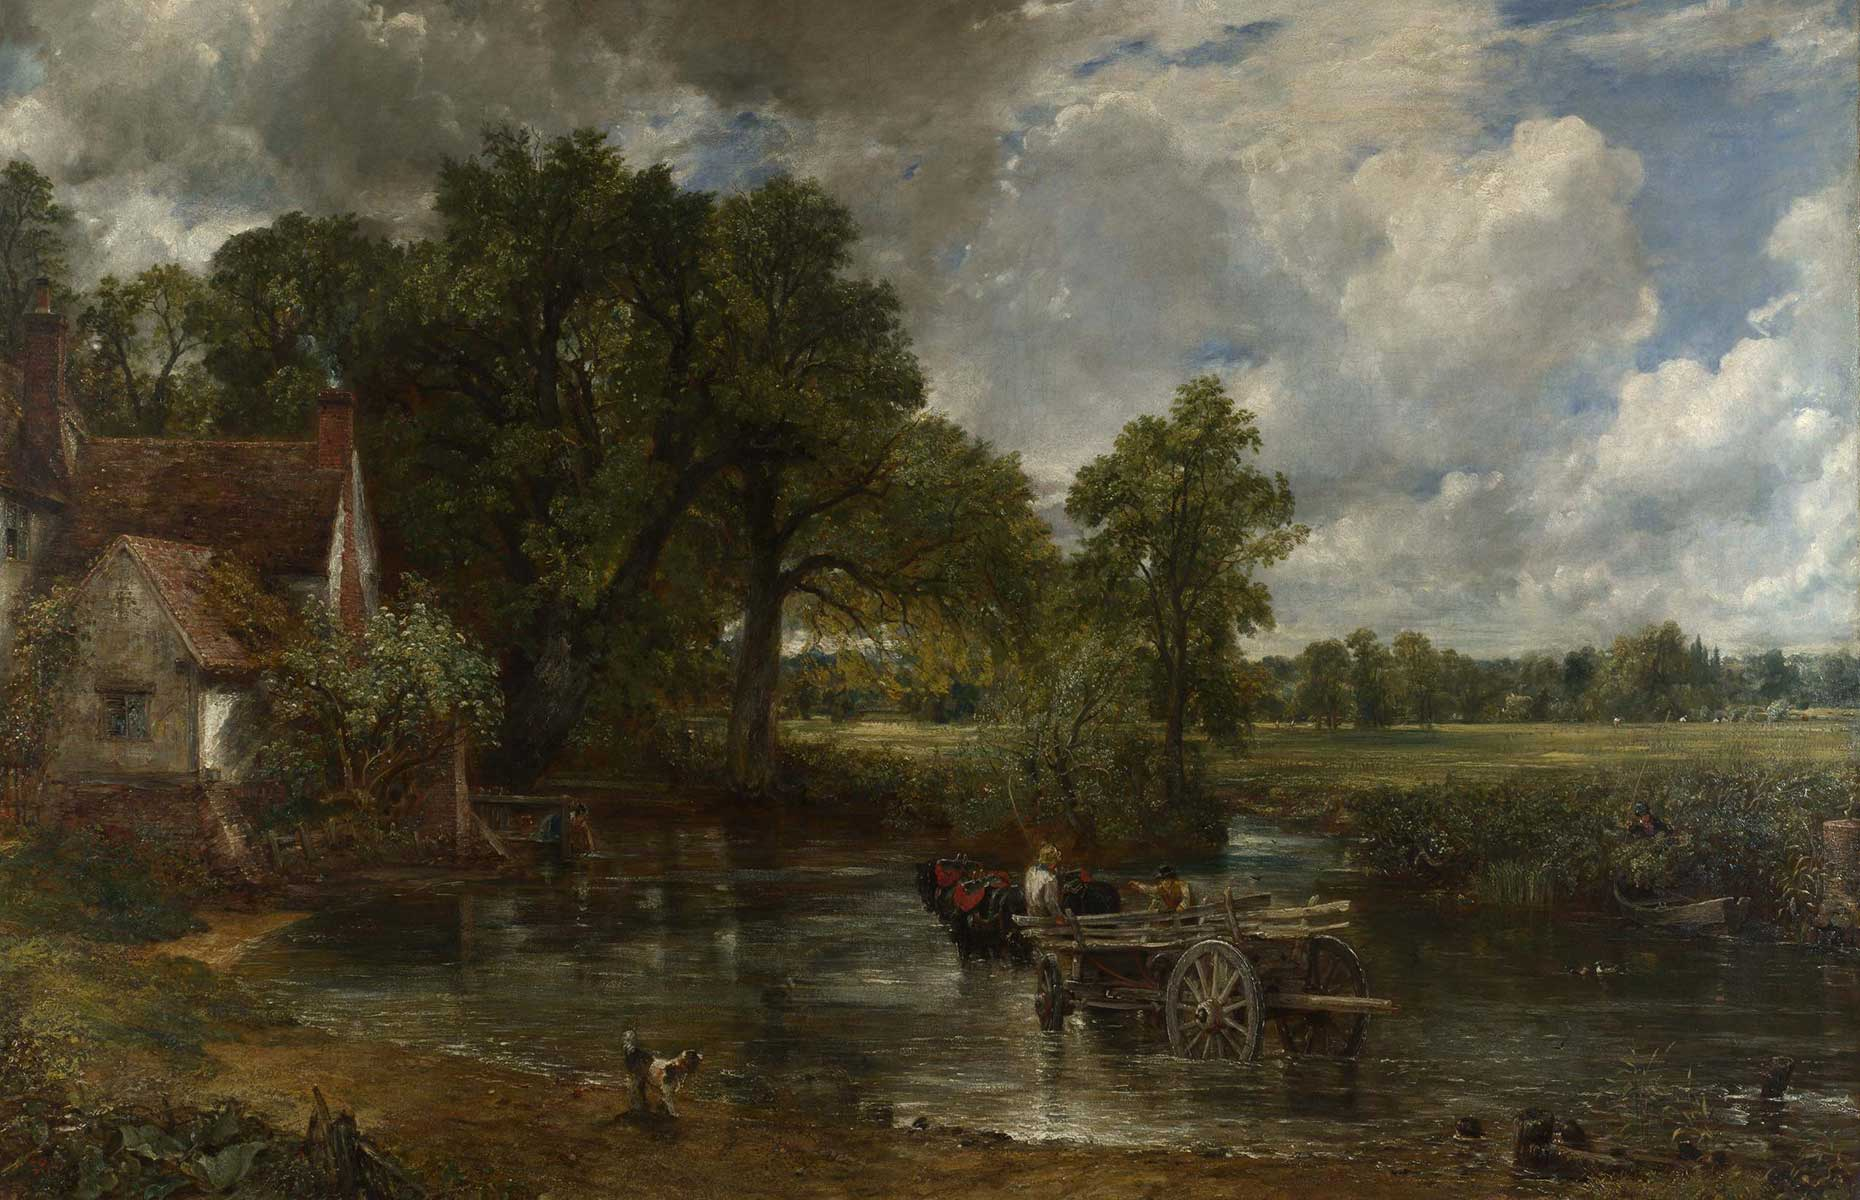 The Hay Wain (Image: John Constable/Public domain/via Wikimedia Commons)